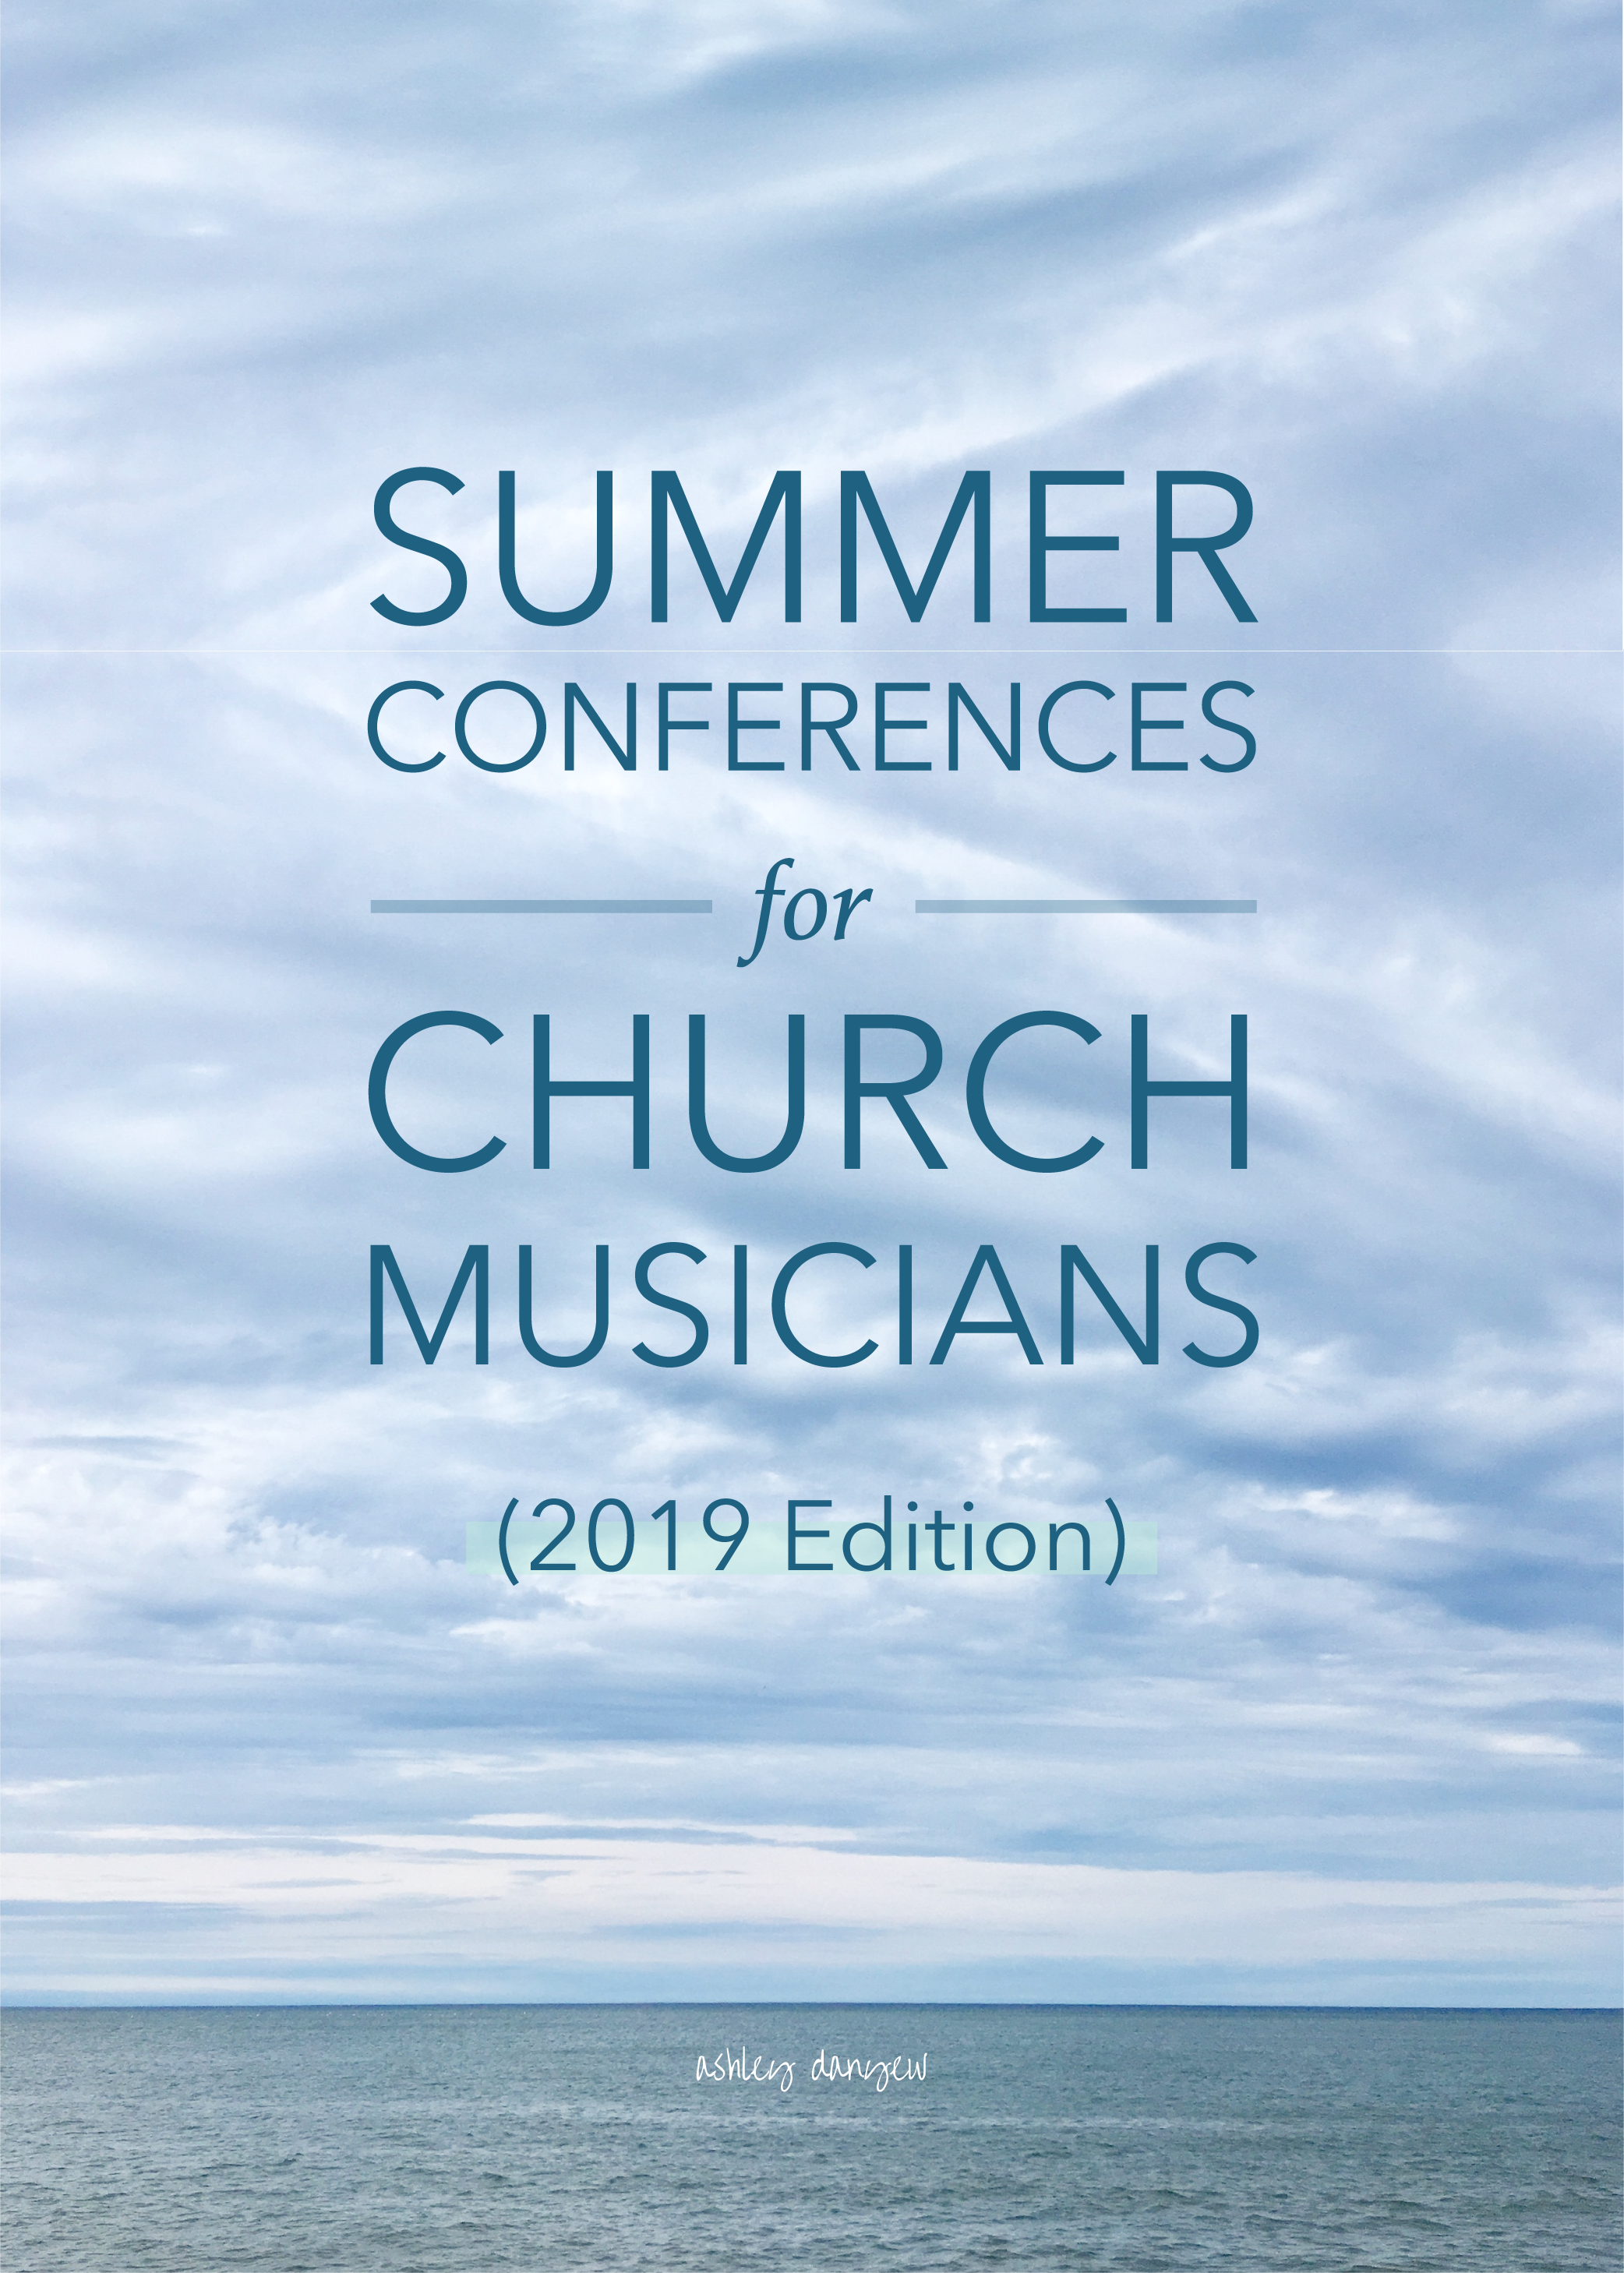 Summer Conferences for Church Musicians (2019 Edition)